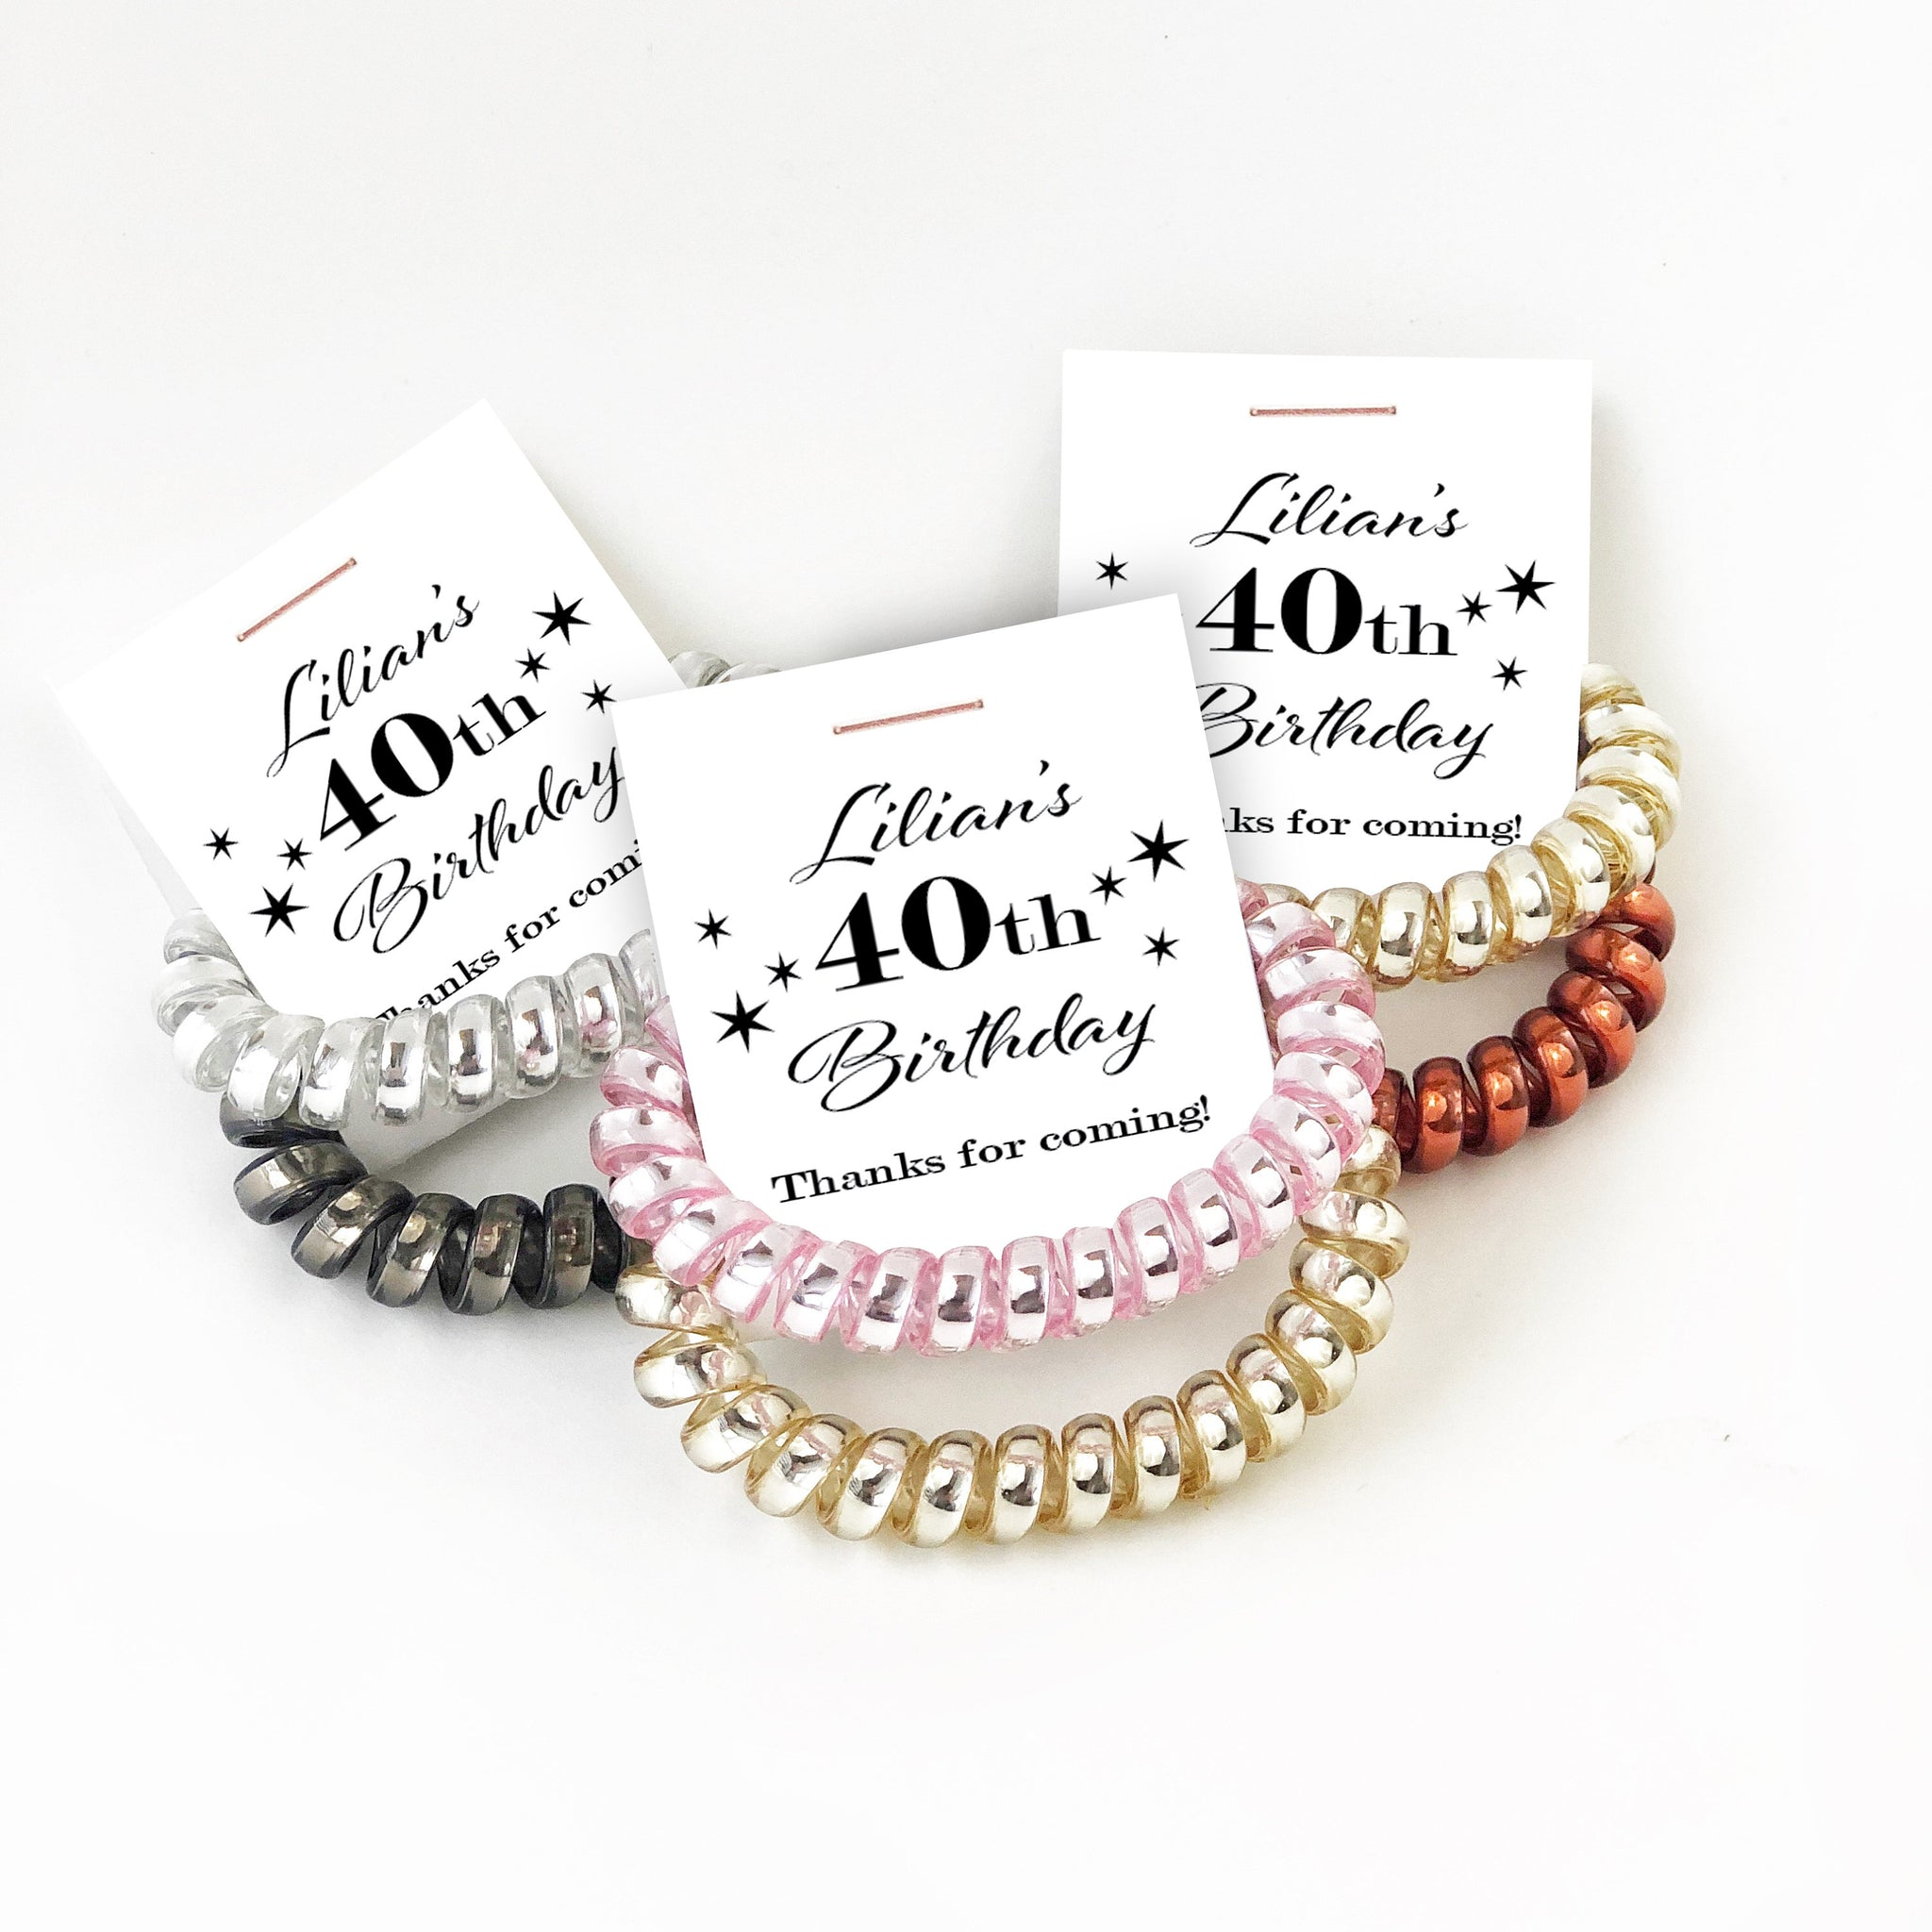 40th Birthday Party Favors, Spiral Hair Ties - @PlumPolkaDot